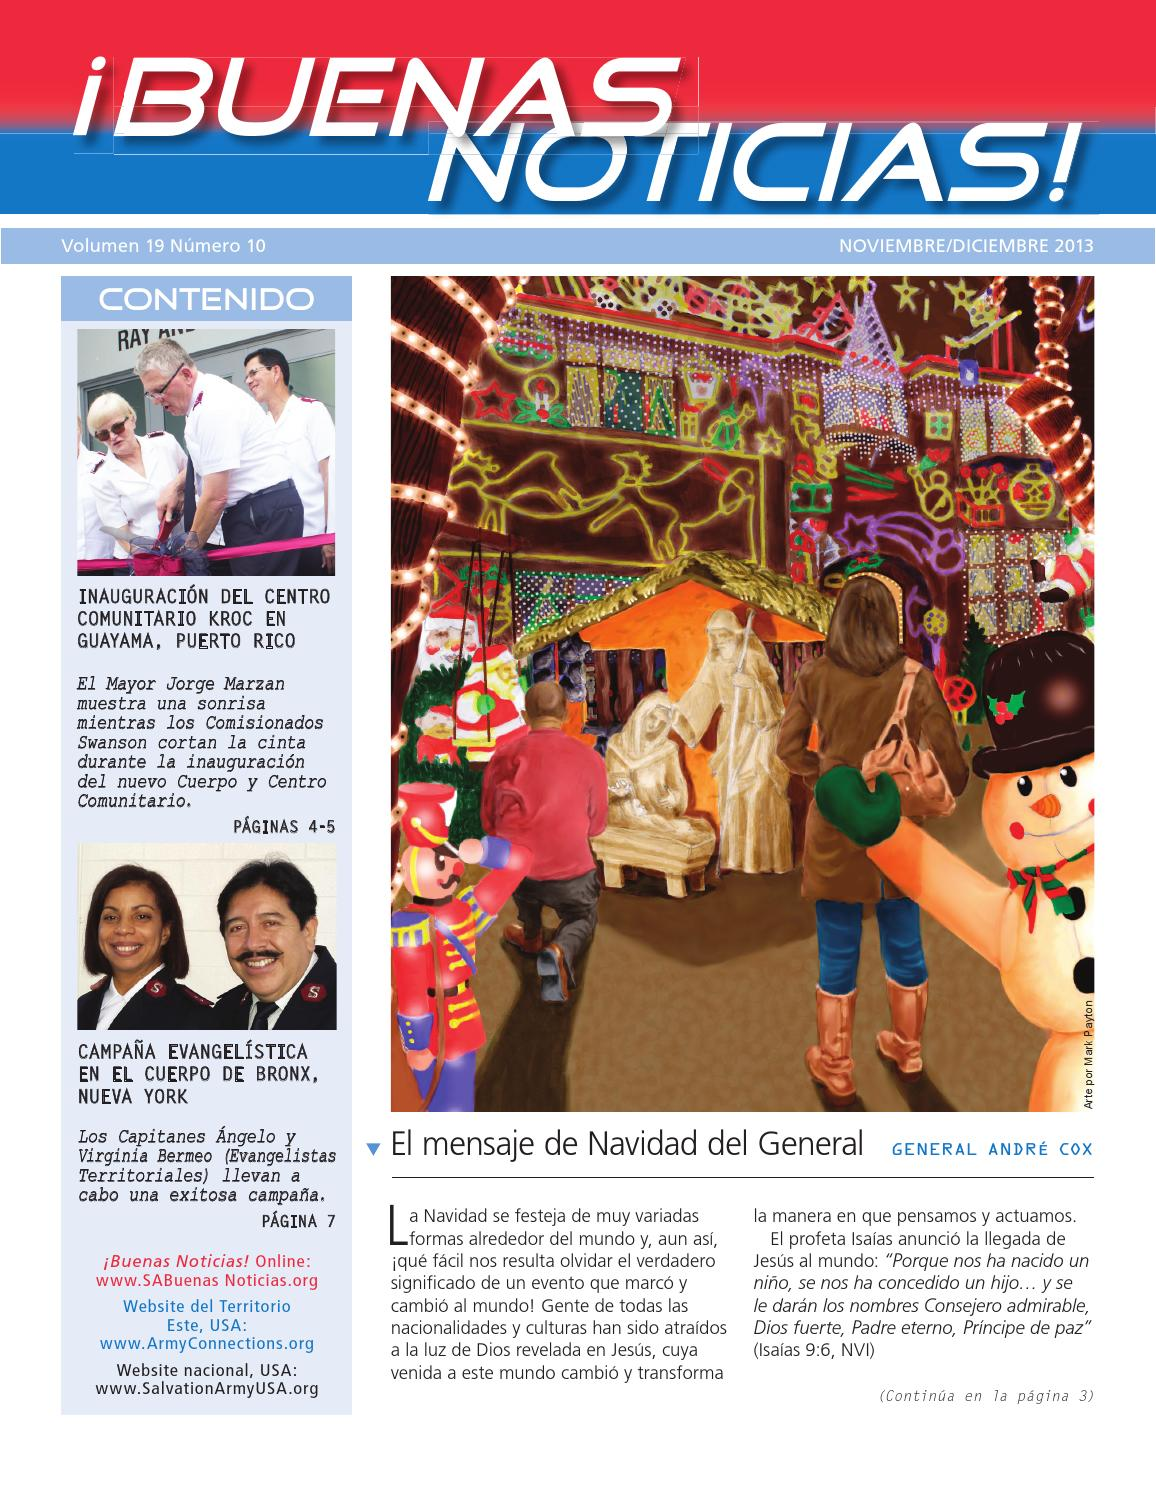 Buenas Noticias! Vol.19 No.10 by The Salvation Army: SAconnects - issuu